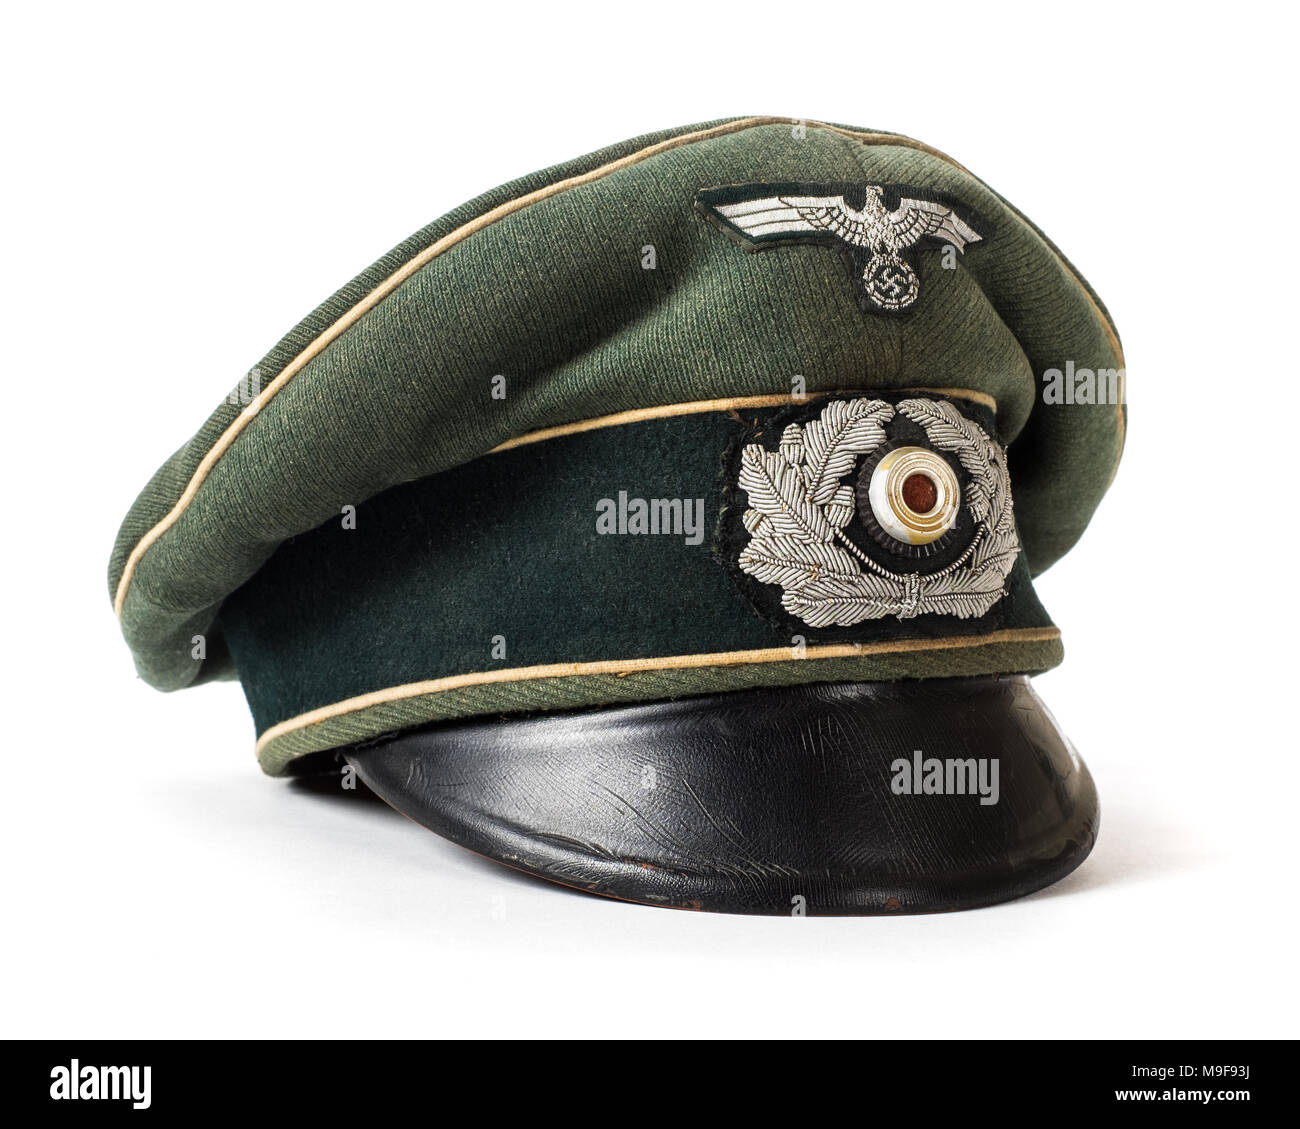 WW2 German Third Reich Army Officer's visor with cloth insignia and Wermacht eagle - Stock Image